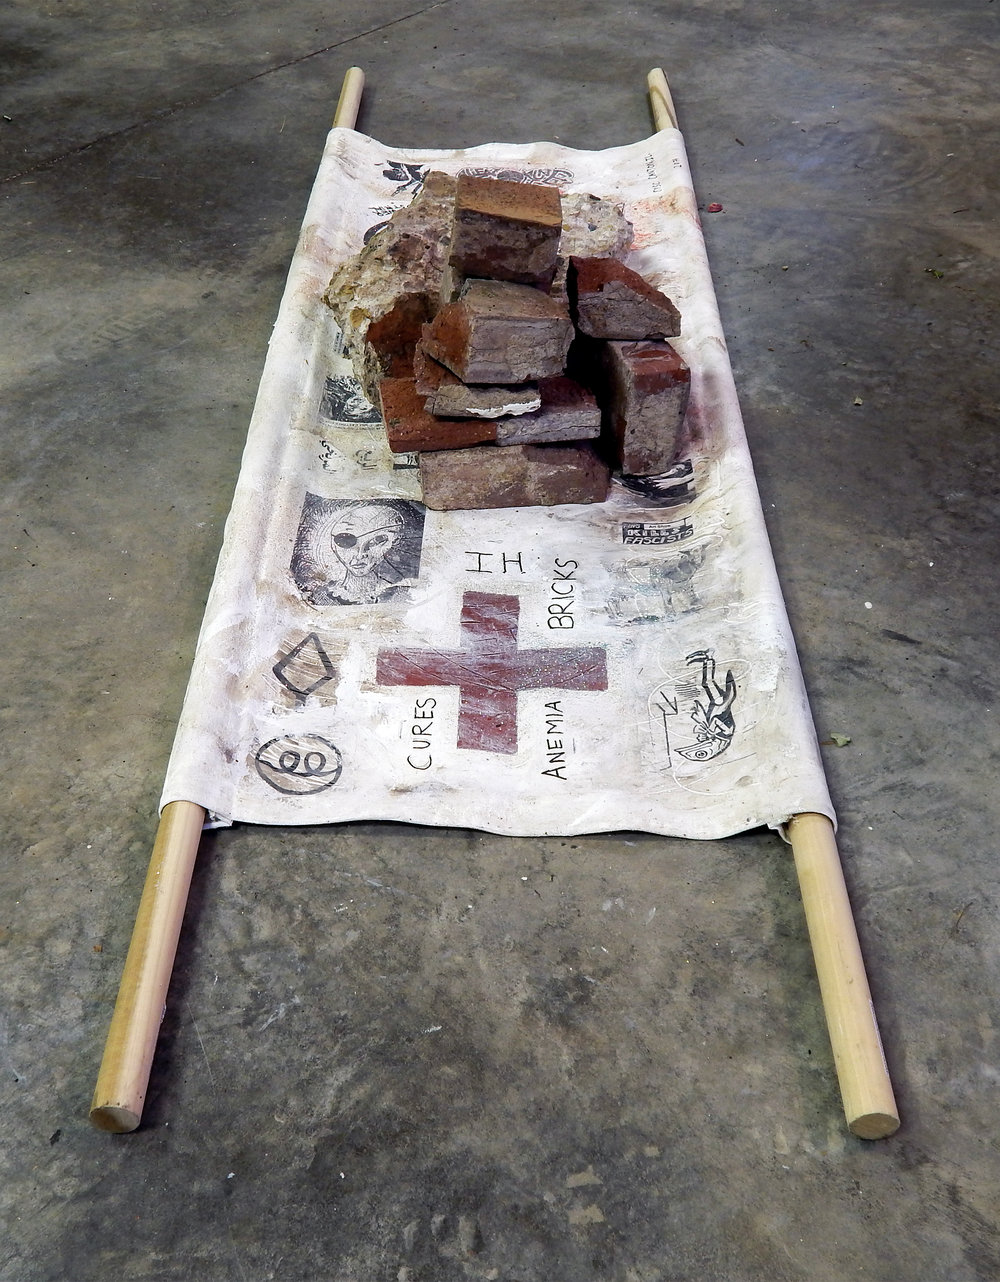 The Healing Properties of Post-Industrial Debris: IH Bricks (The Barista Who Could See the Future)    Acrylic, coffee, glitter ash, stickers, wig-hair, Sharpie on canvas with bricks from the abandoned International Harvester plant in Canton, Illinois and wood (2017).